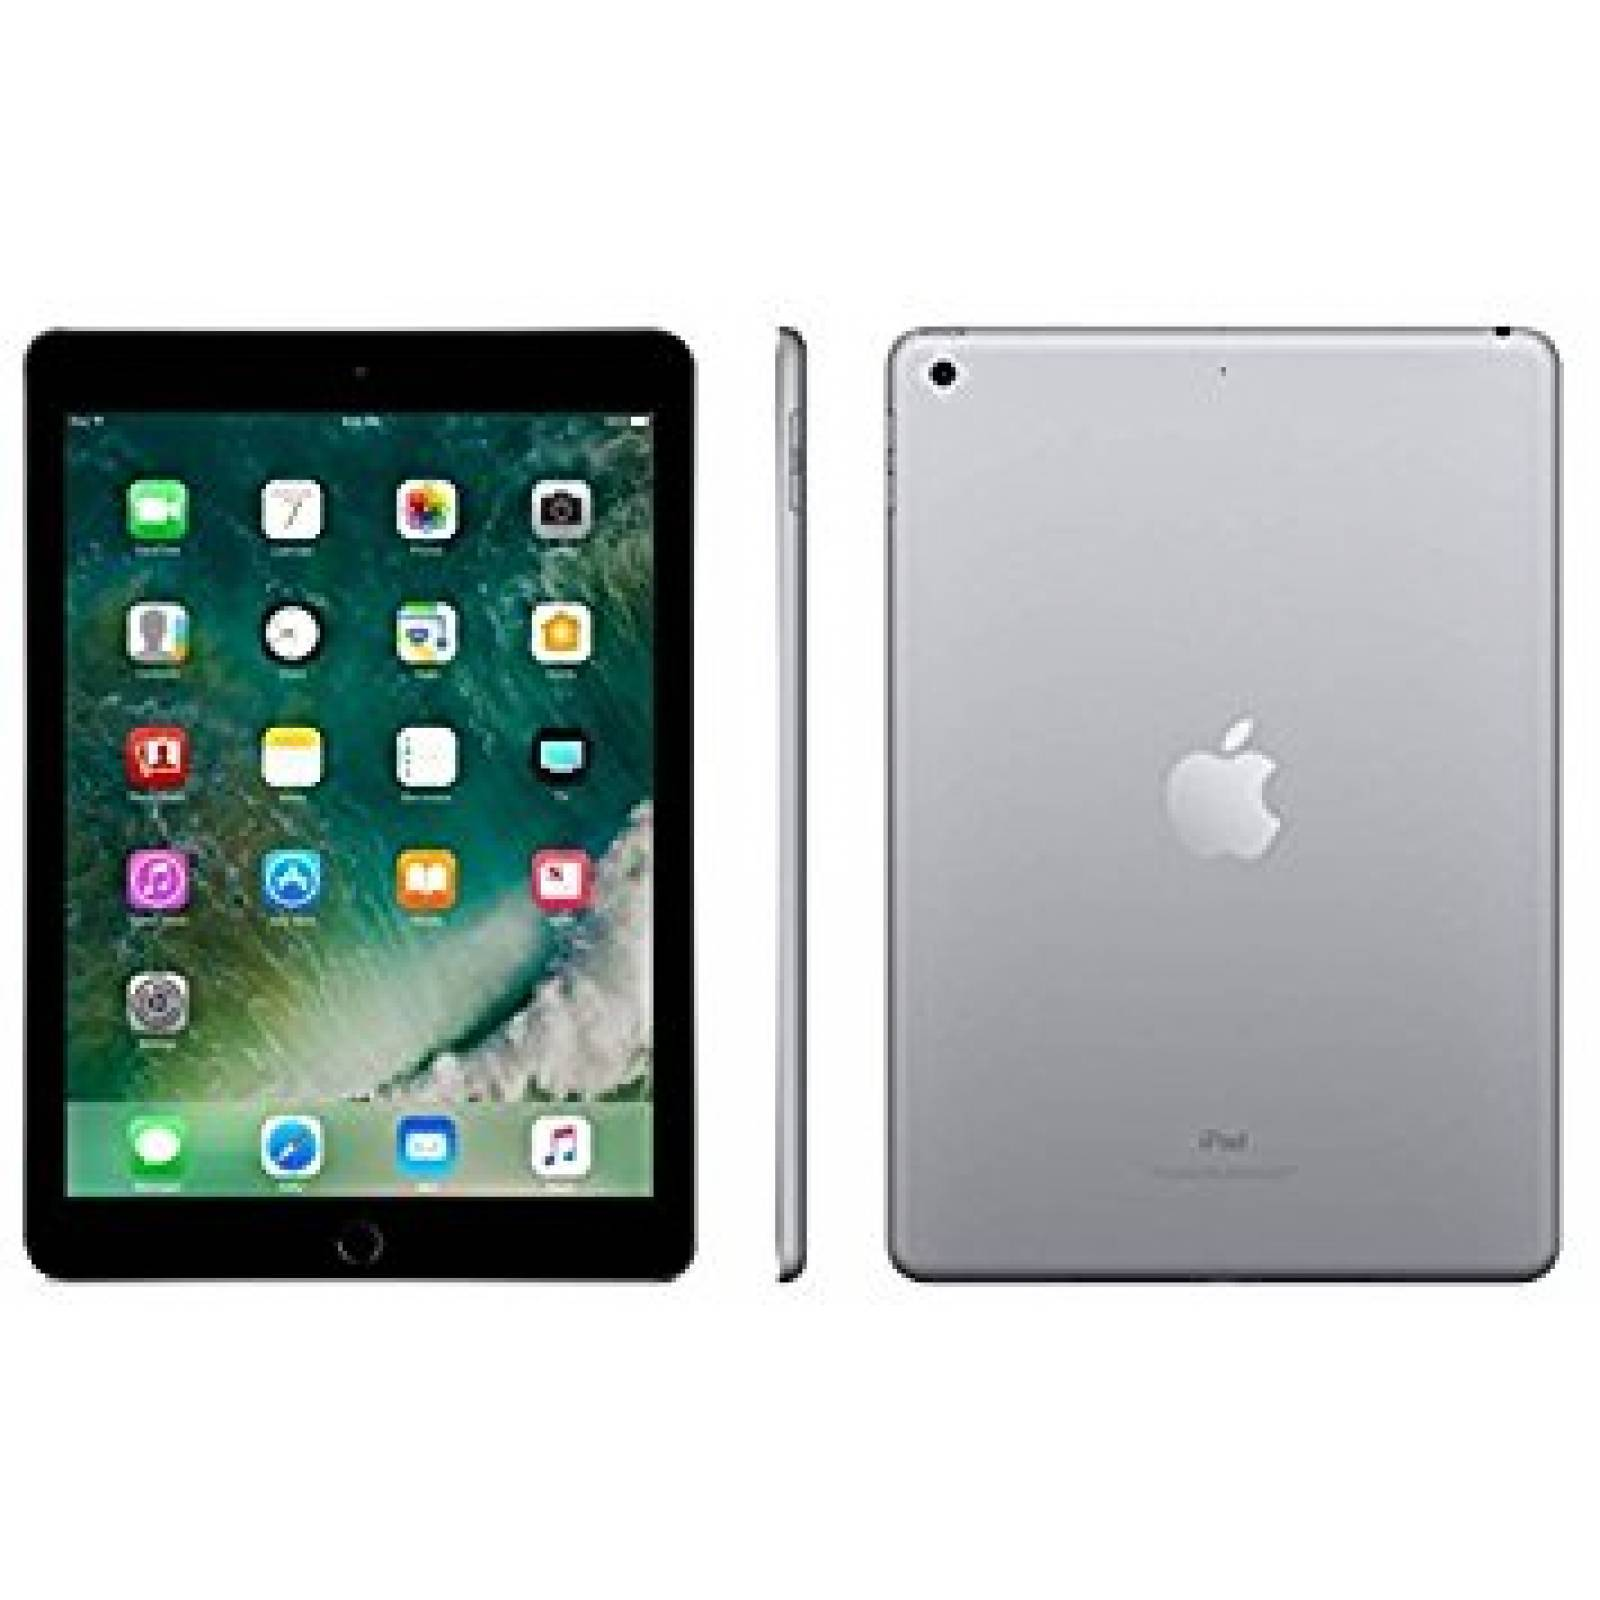 "iPad 6 Apple 4G 32GB Cinza Espacial Tela 9.7"" Retina - Proc. Chip A10 Câm. 8MP + Frontal iOS 11 Touch ID"